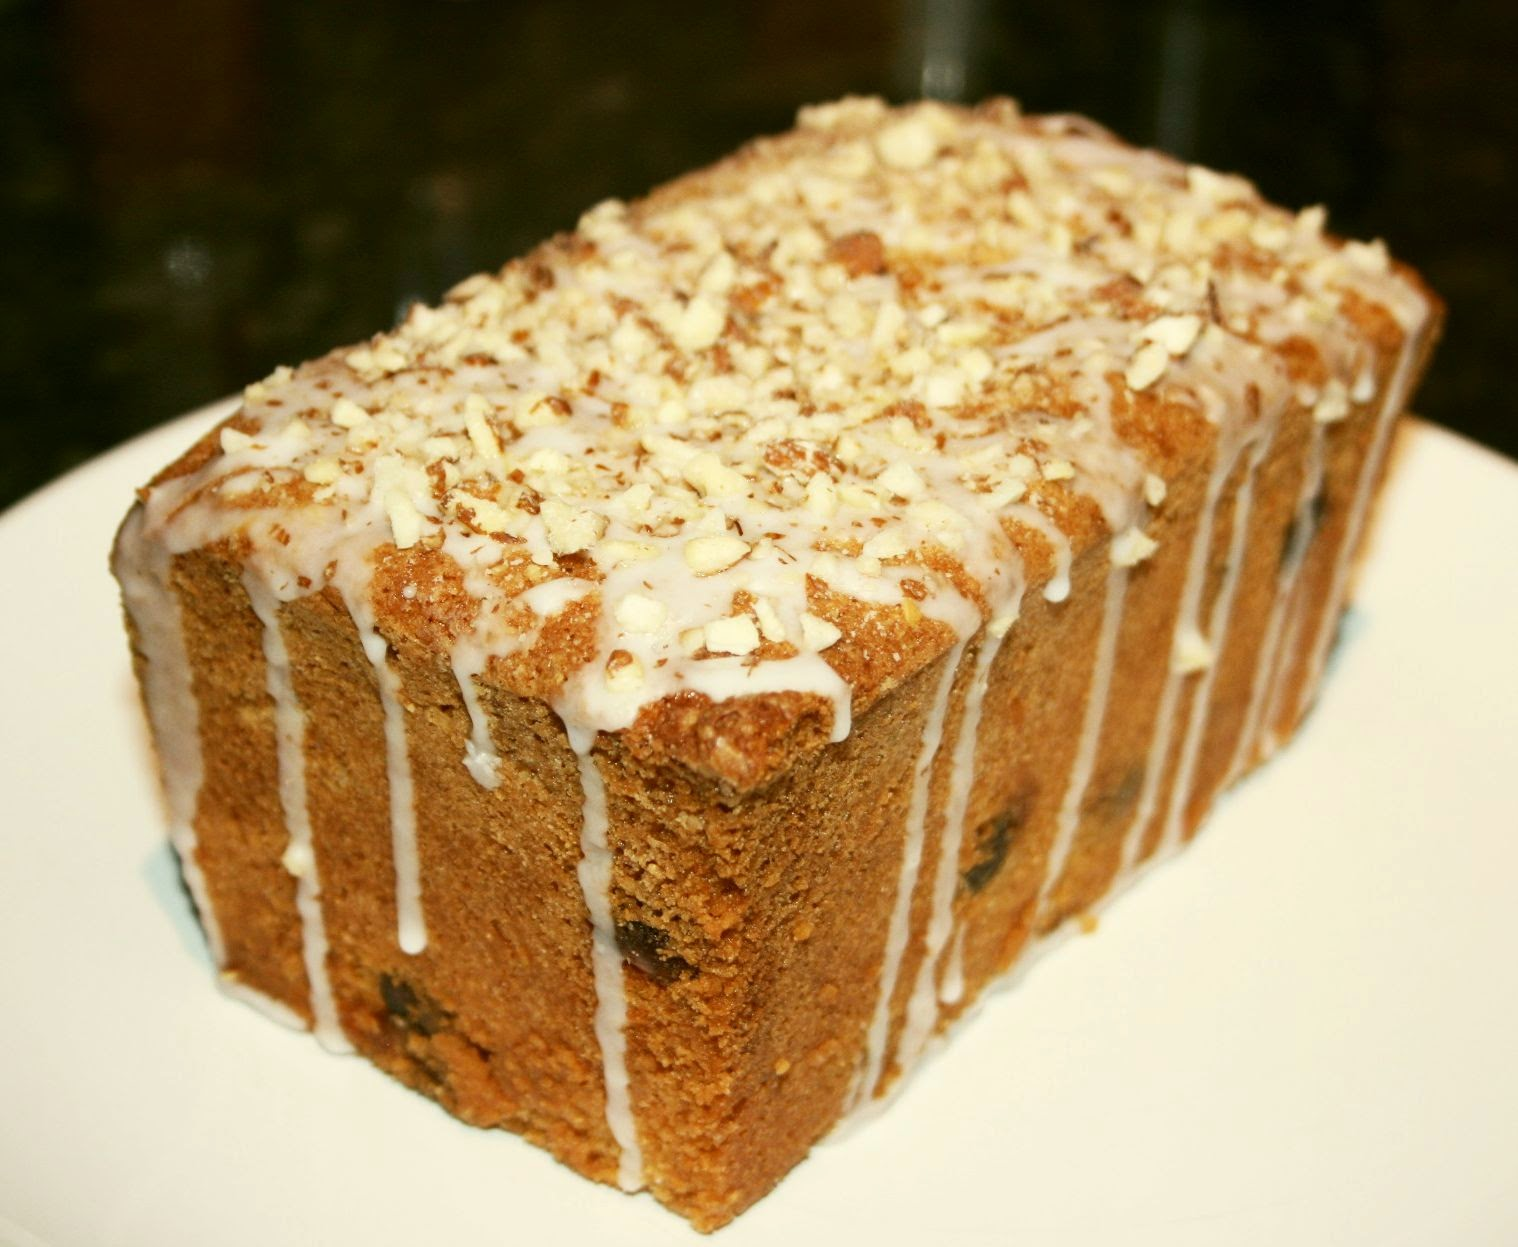 Cake Recipes Using Loaf Tin: CHERRY AND ALMOND LOAF CAKE